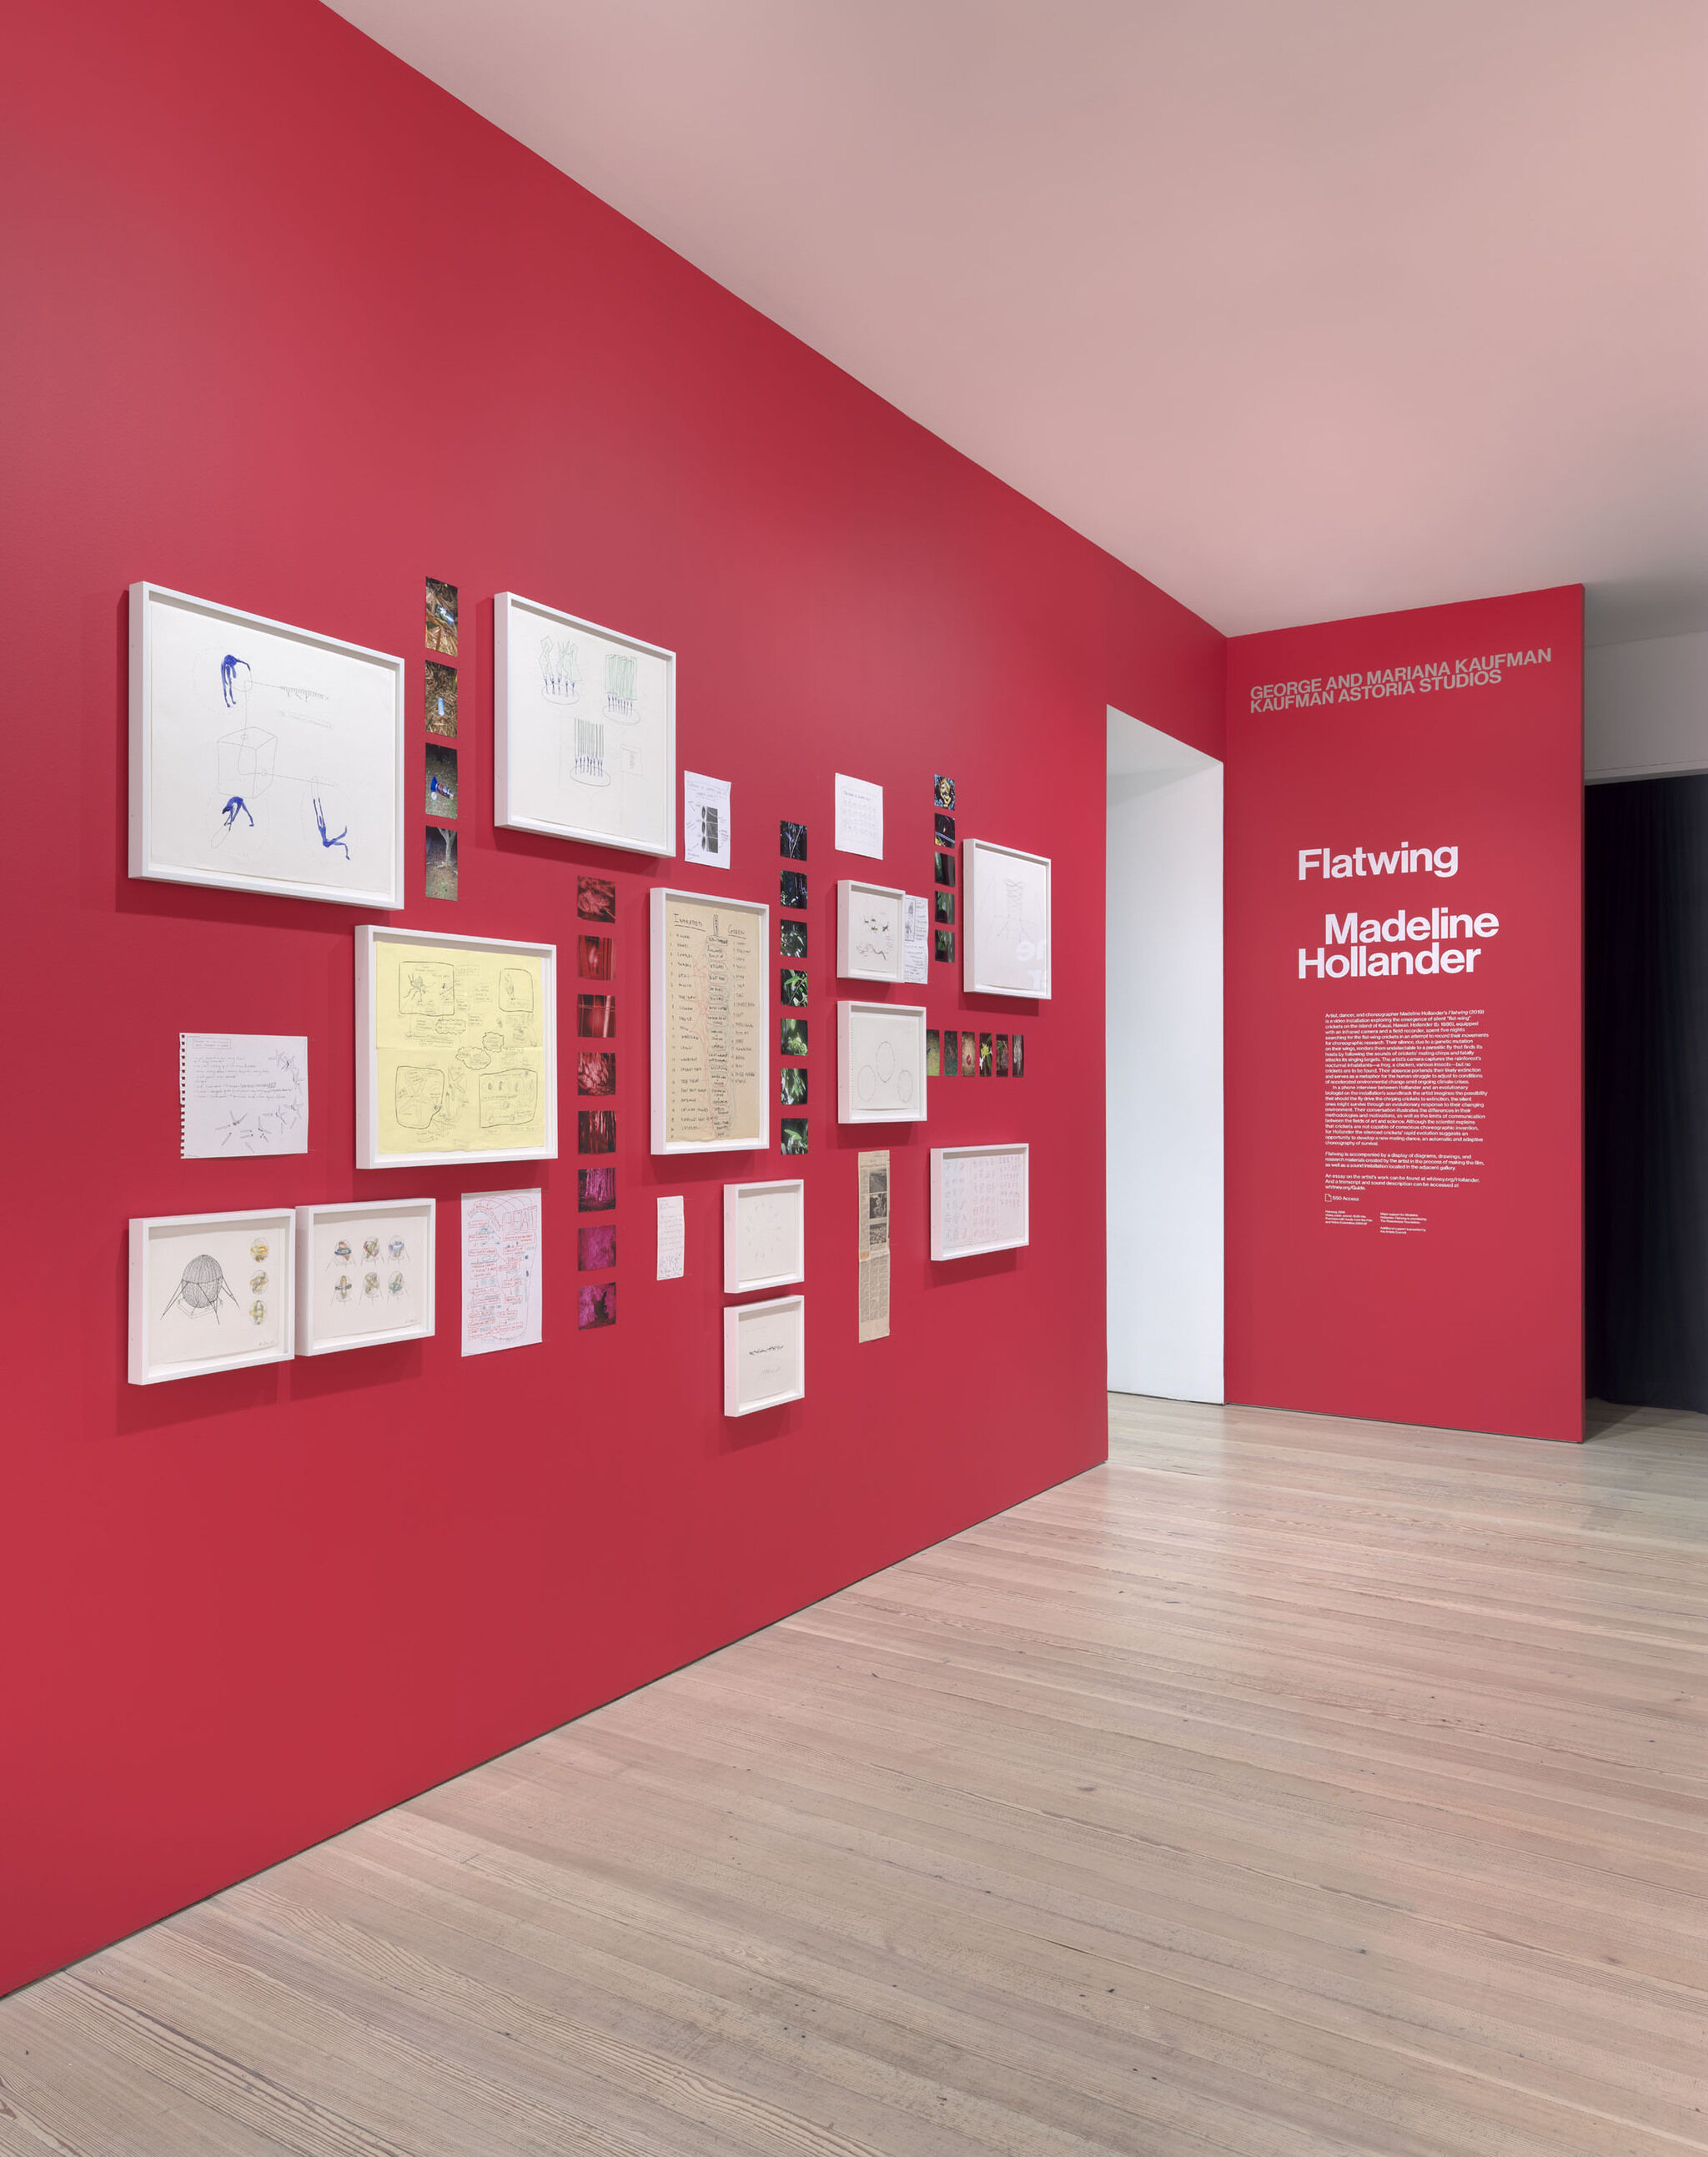 A red wall with a text vinyl and framed pieces from the Madeline Hollander exhibition.